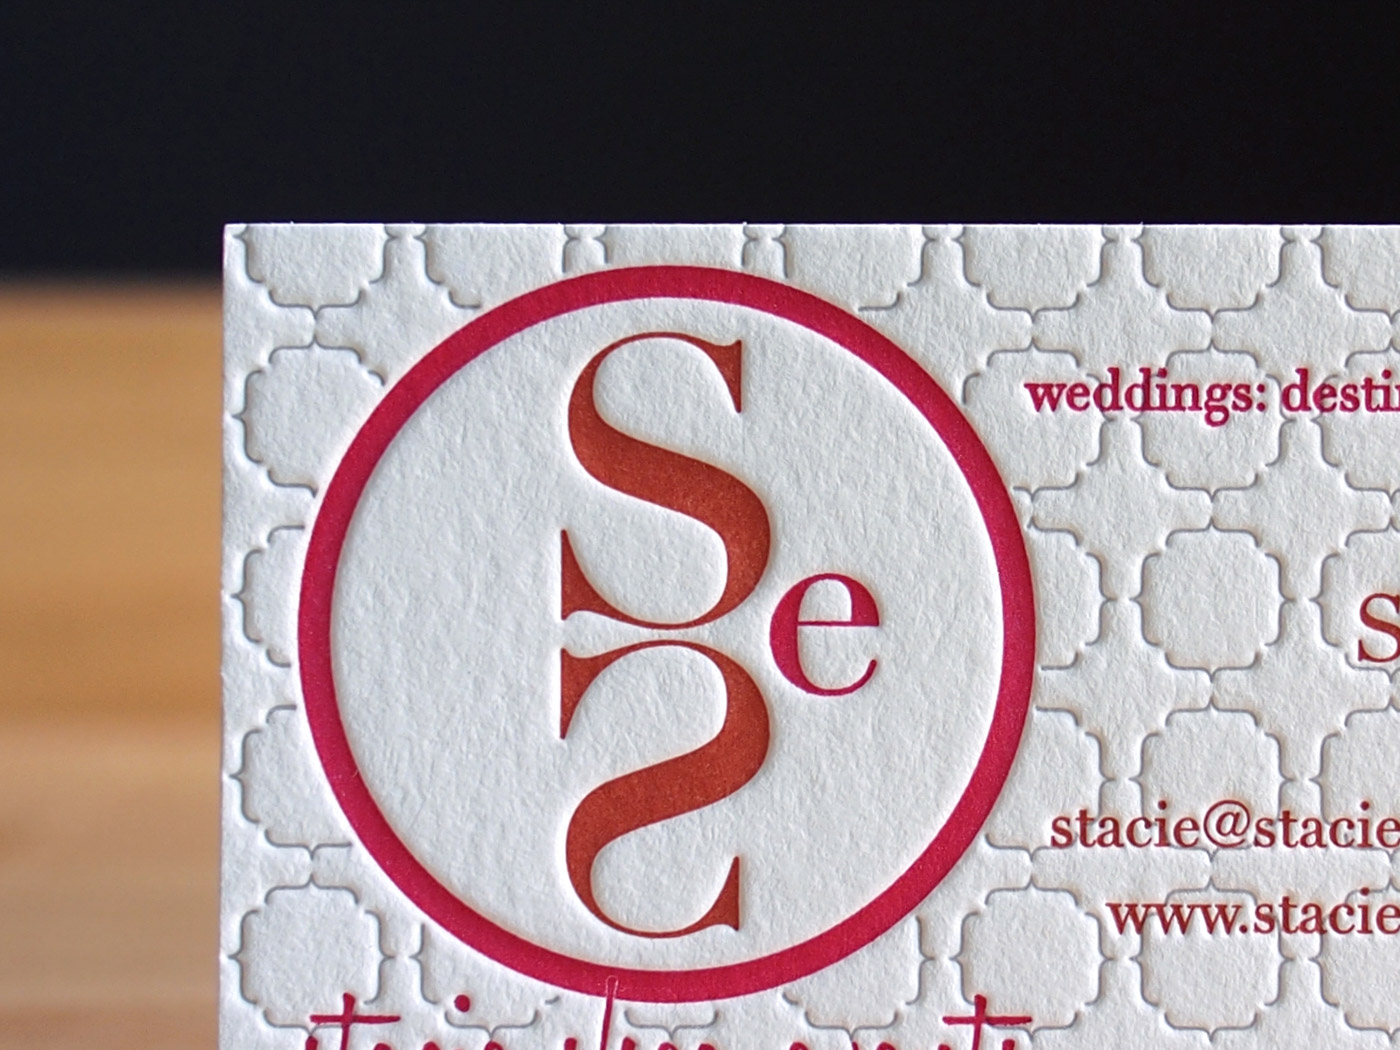 Stacie Shea Events | Printed by Parklife Press